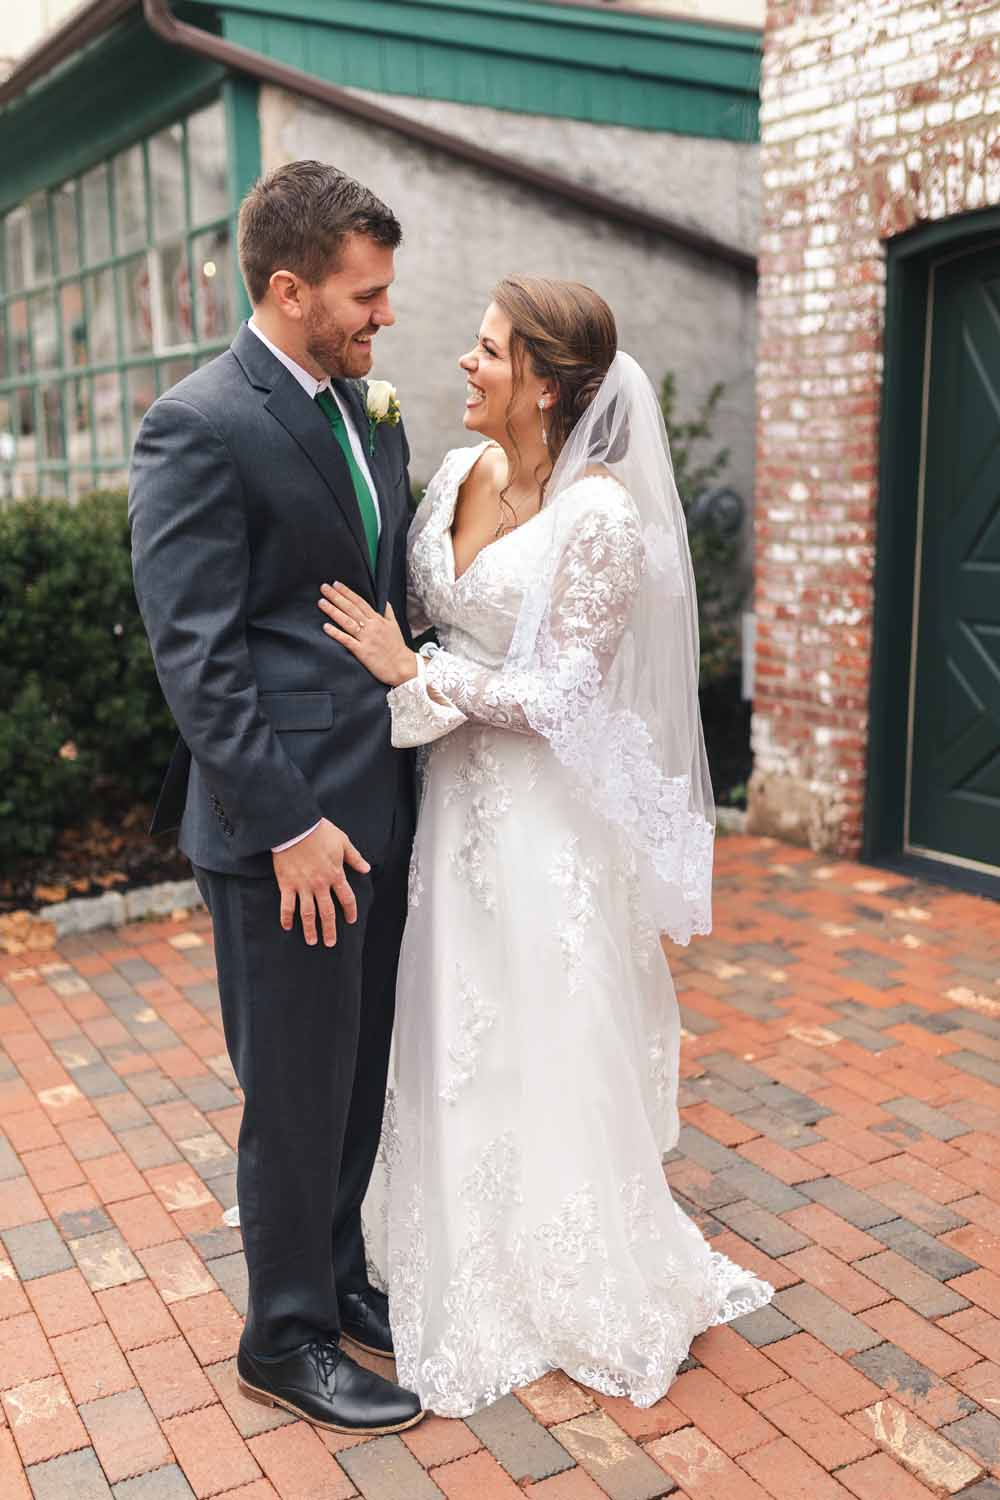 Bride and groom first look at Carriage House in New Hope